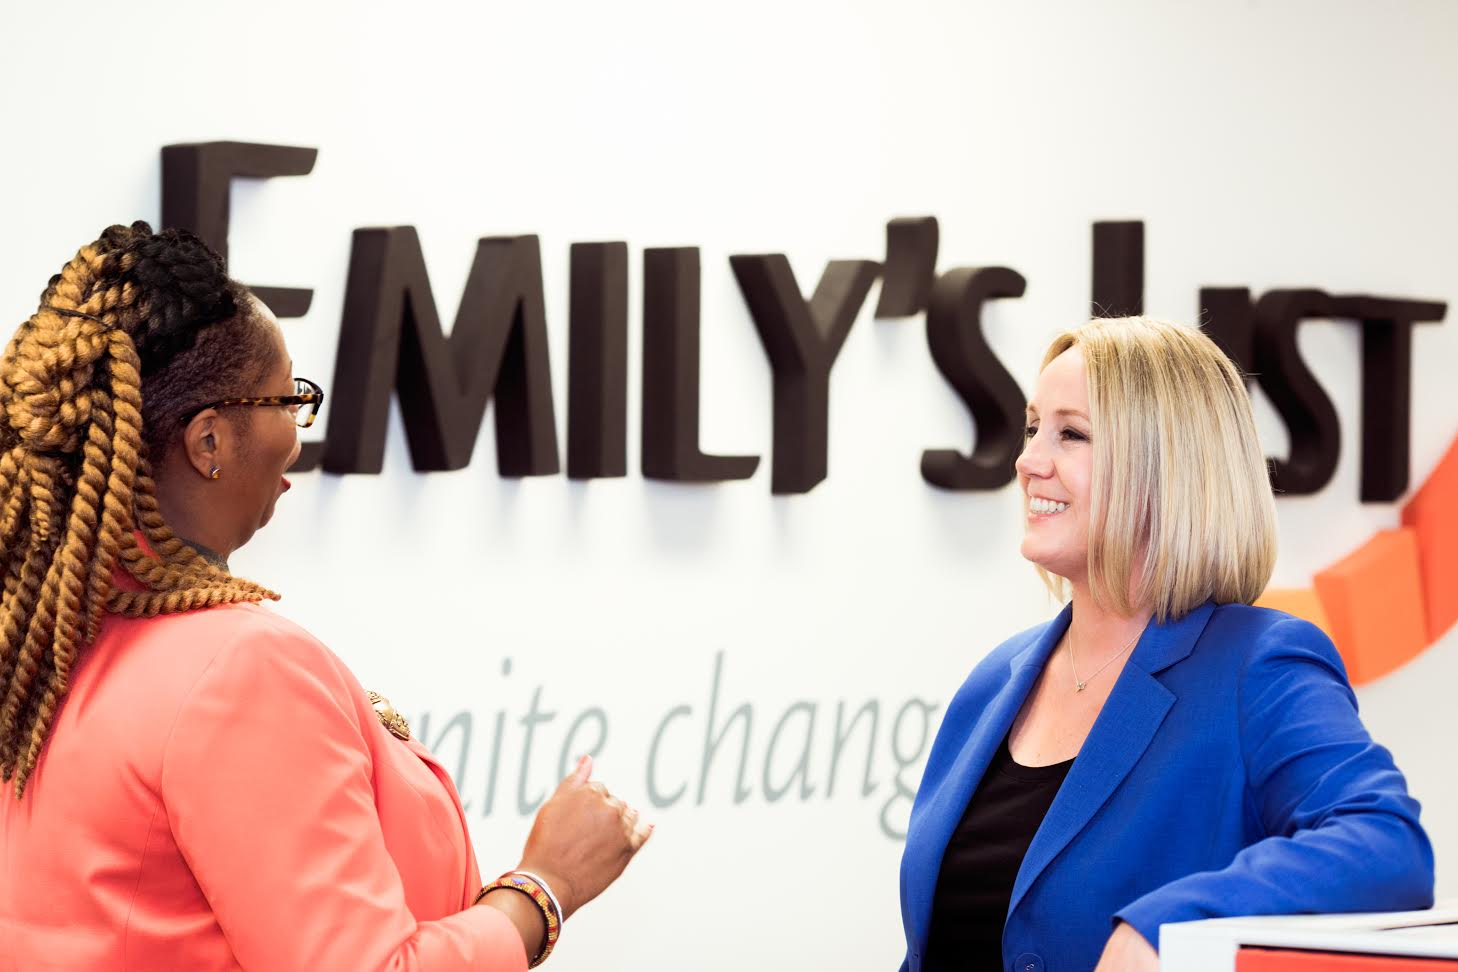 Stephanie Schriock (right) at the Emily's List offices.